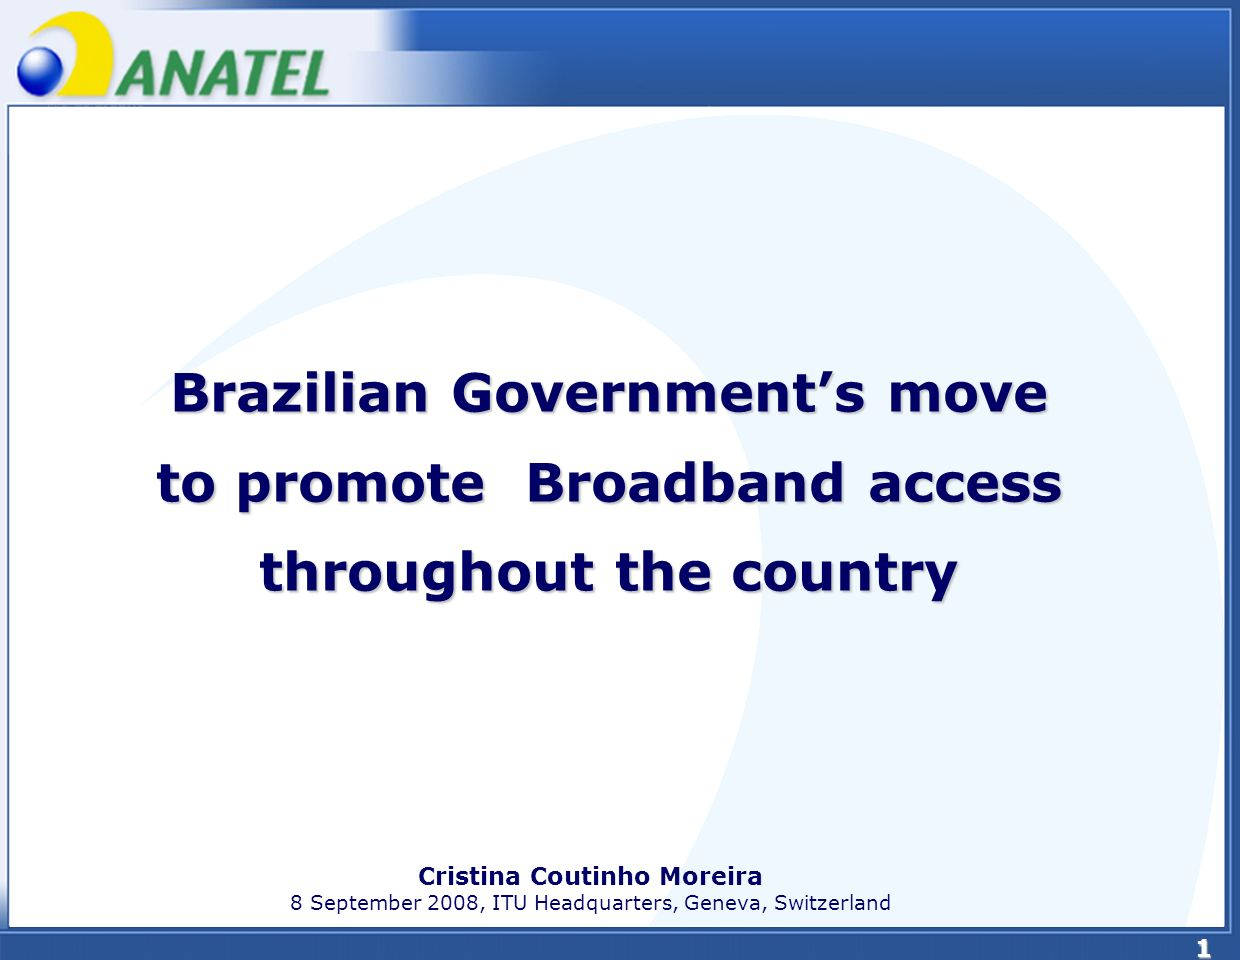 12 How to implement Broadband infrastructure throughout the country enabling access to every Brazilian municipality.